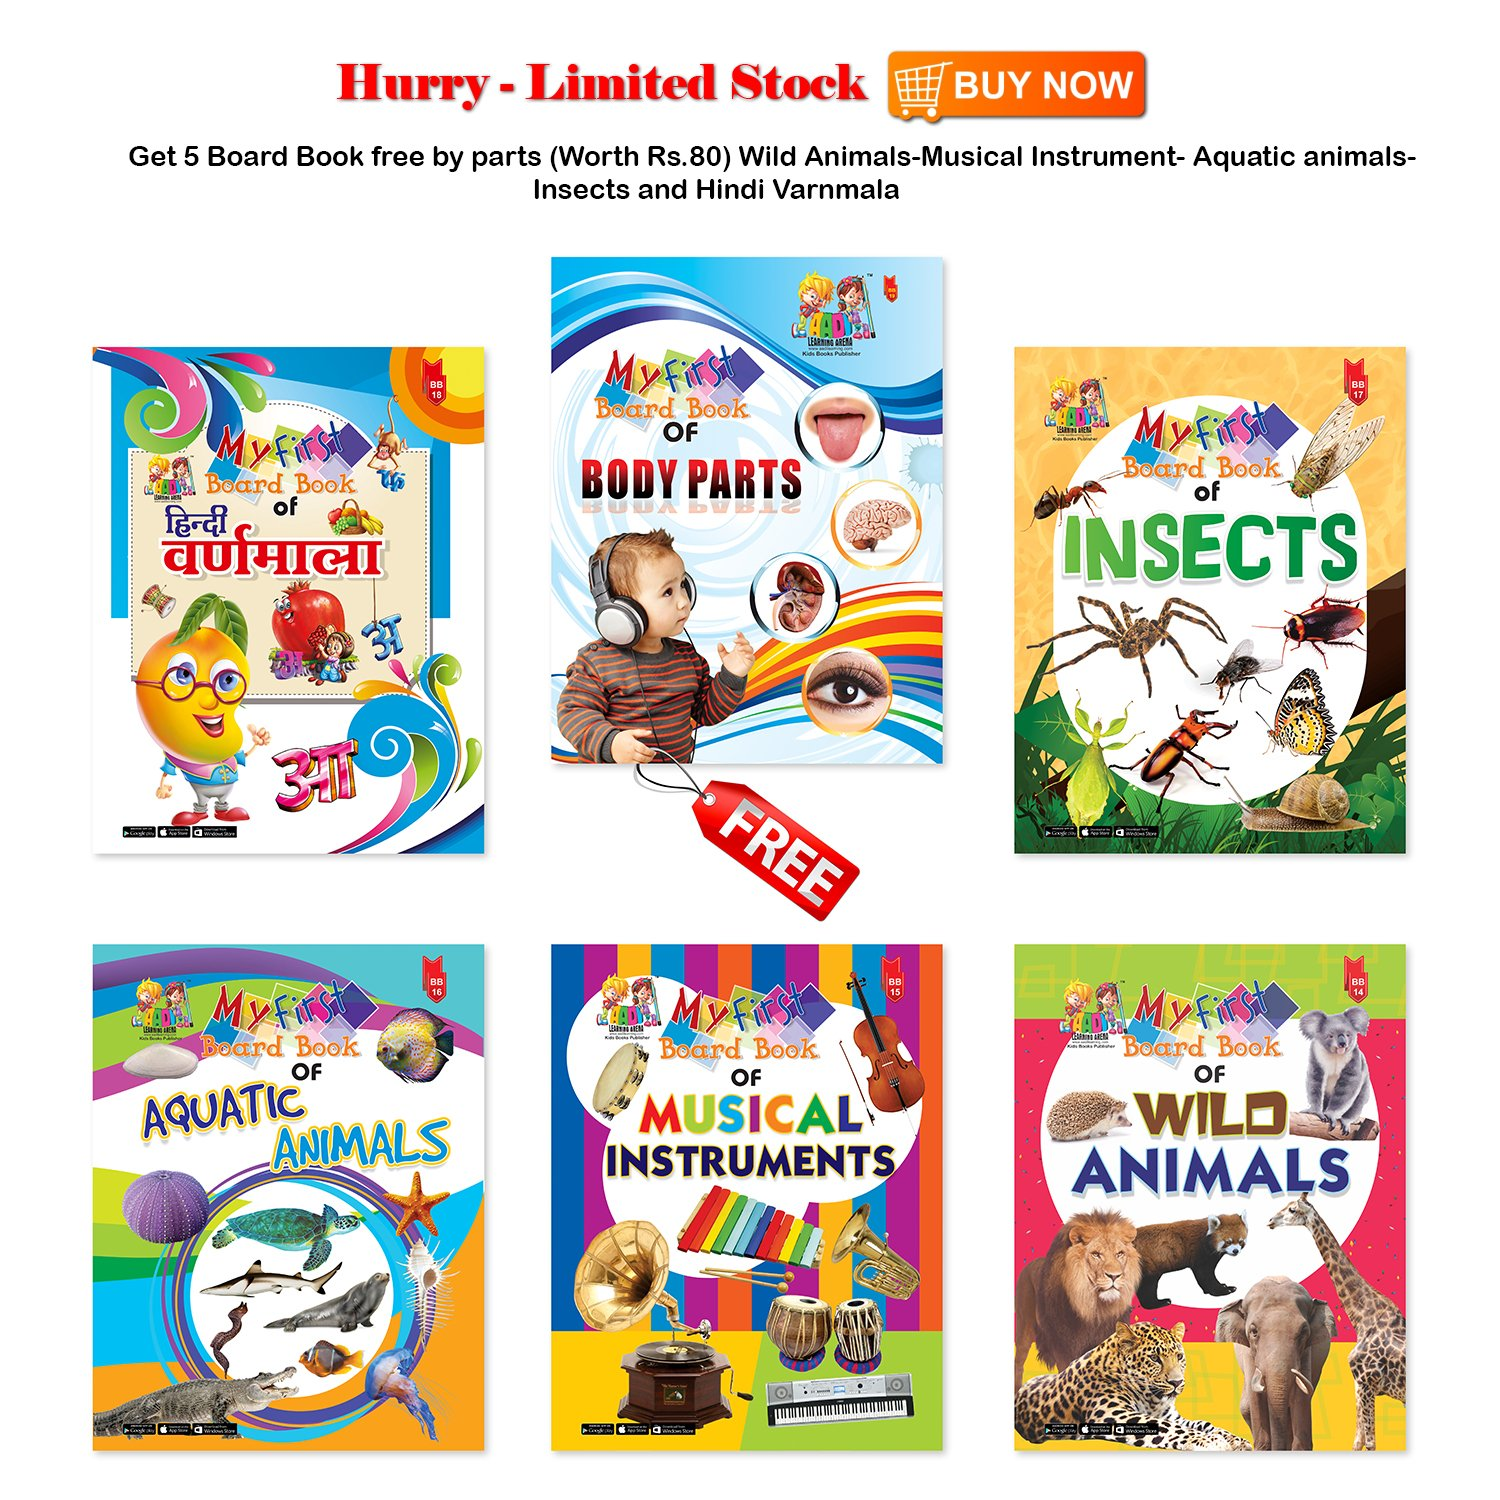 Buy A Free Board Book of BODY Parts(Worth Rs 80) on a Combo Set of